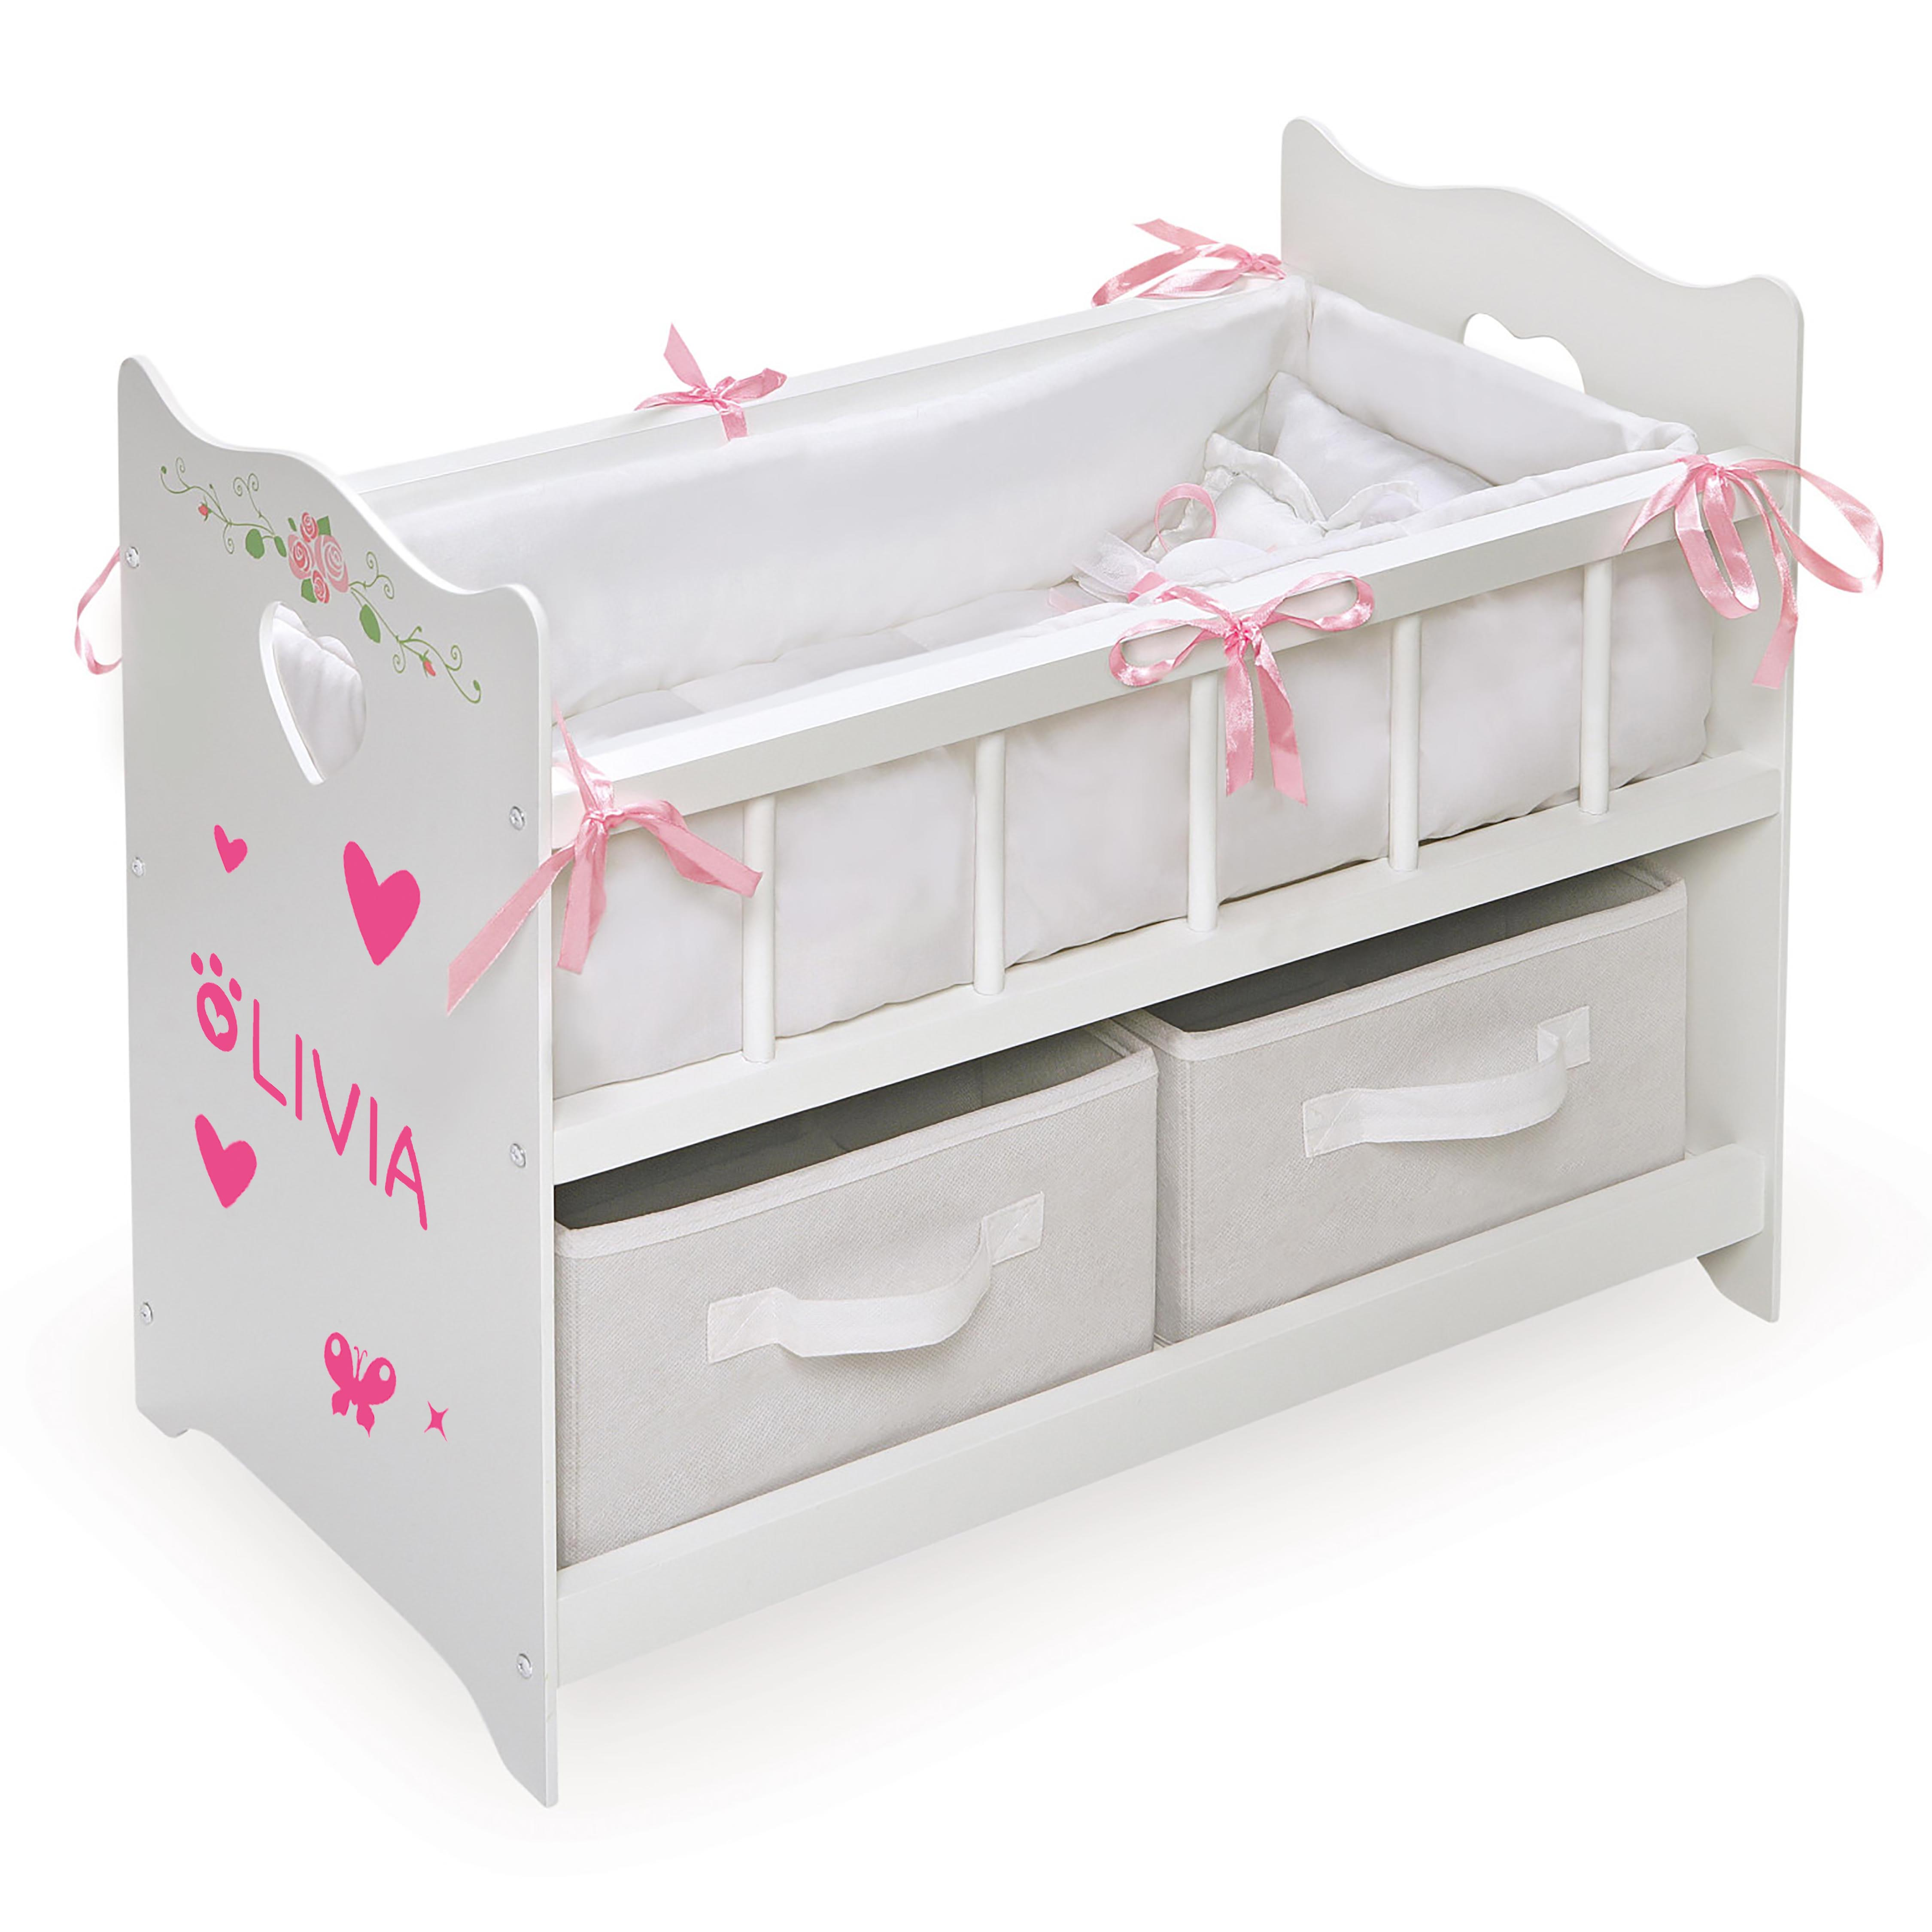 Painted White Handmade Crib for 18 inch American Girl and Bitty Baby Dolls